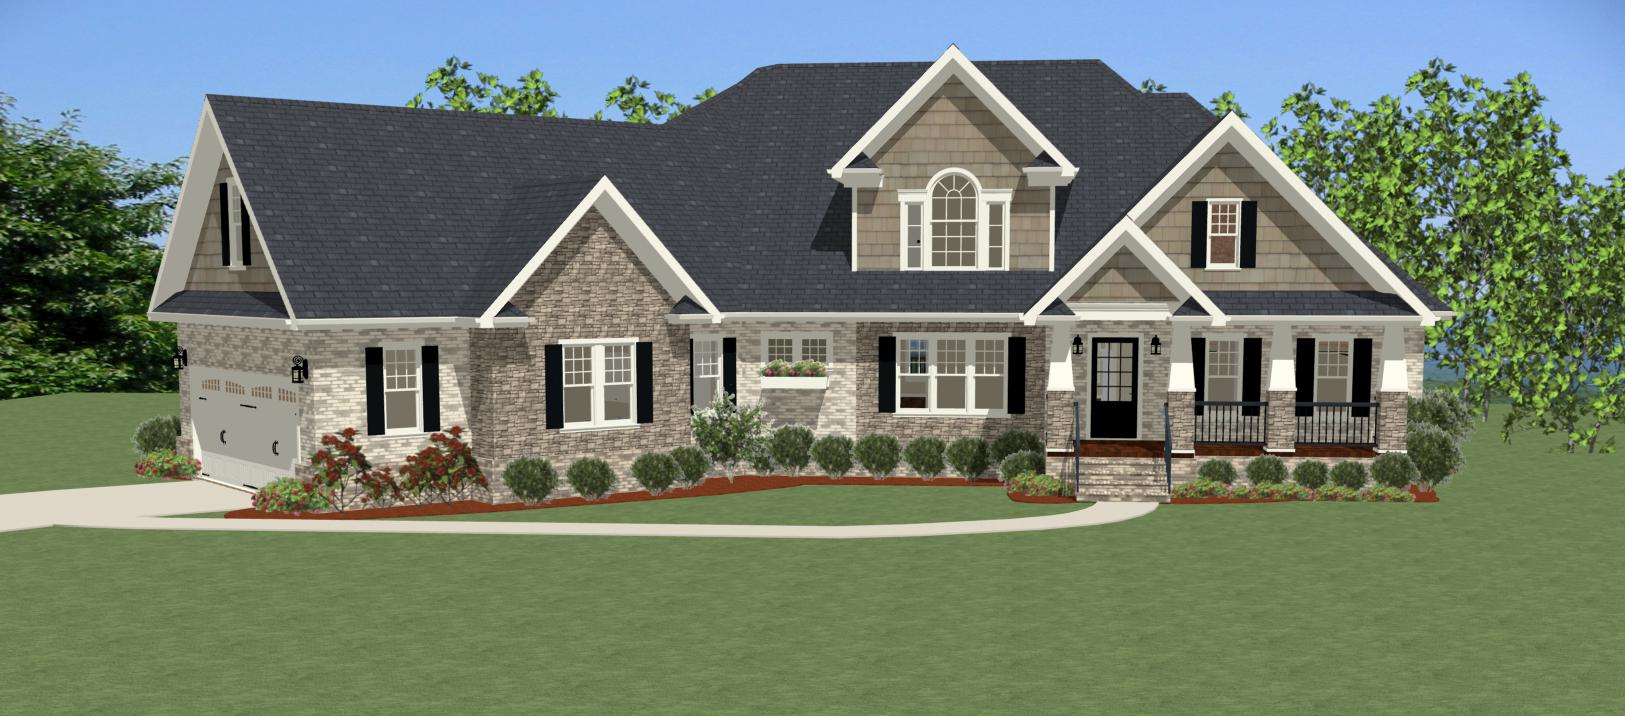 Name our new house plan and win a 100 home depot gift card the house designers - New house plan photos ...